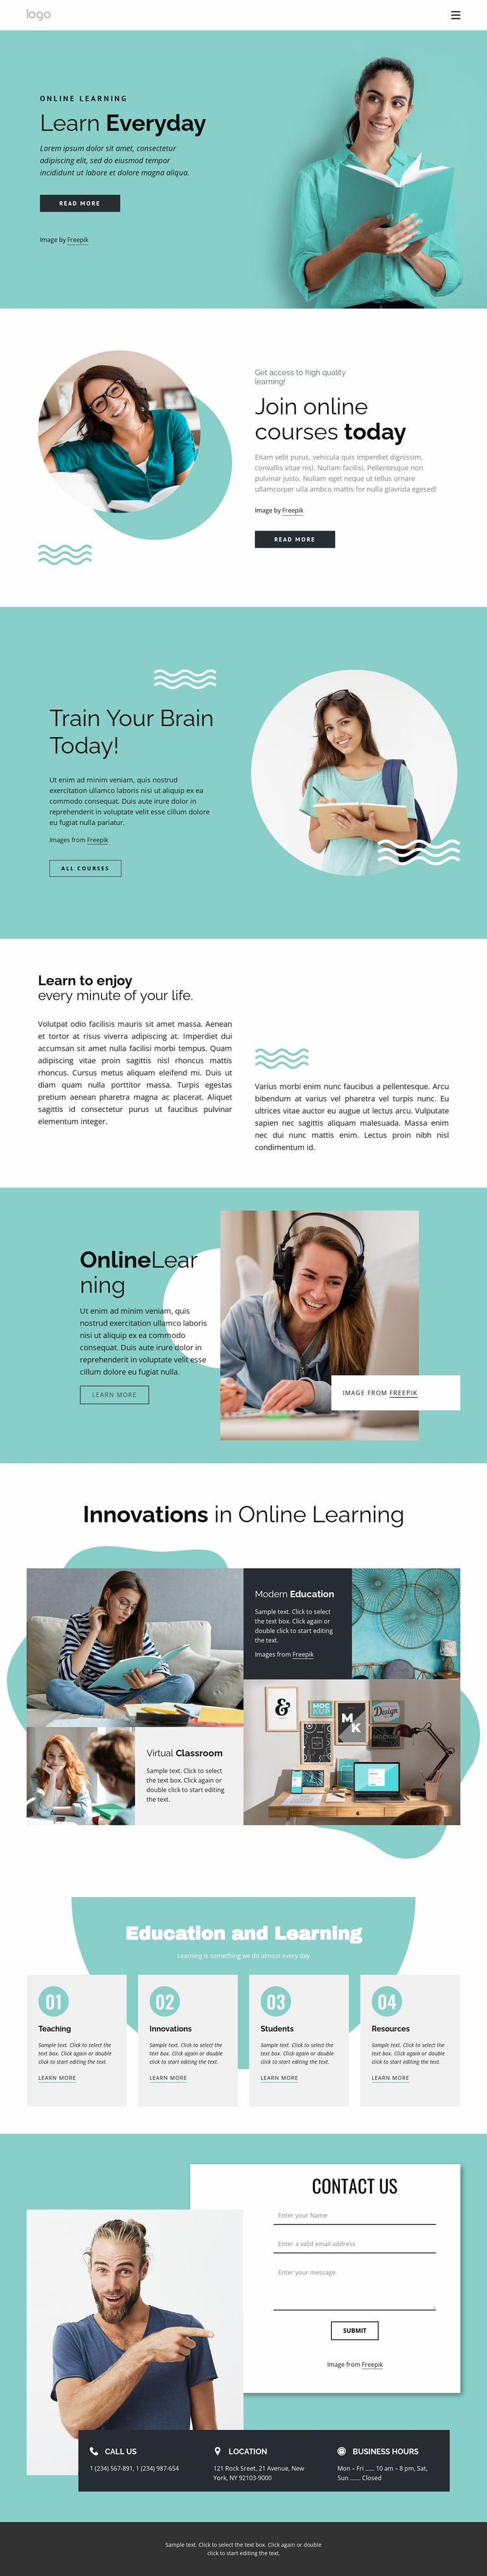 Learning is a lifelong process Landing Page